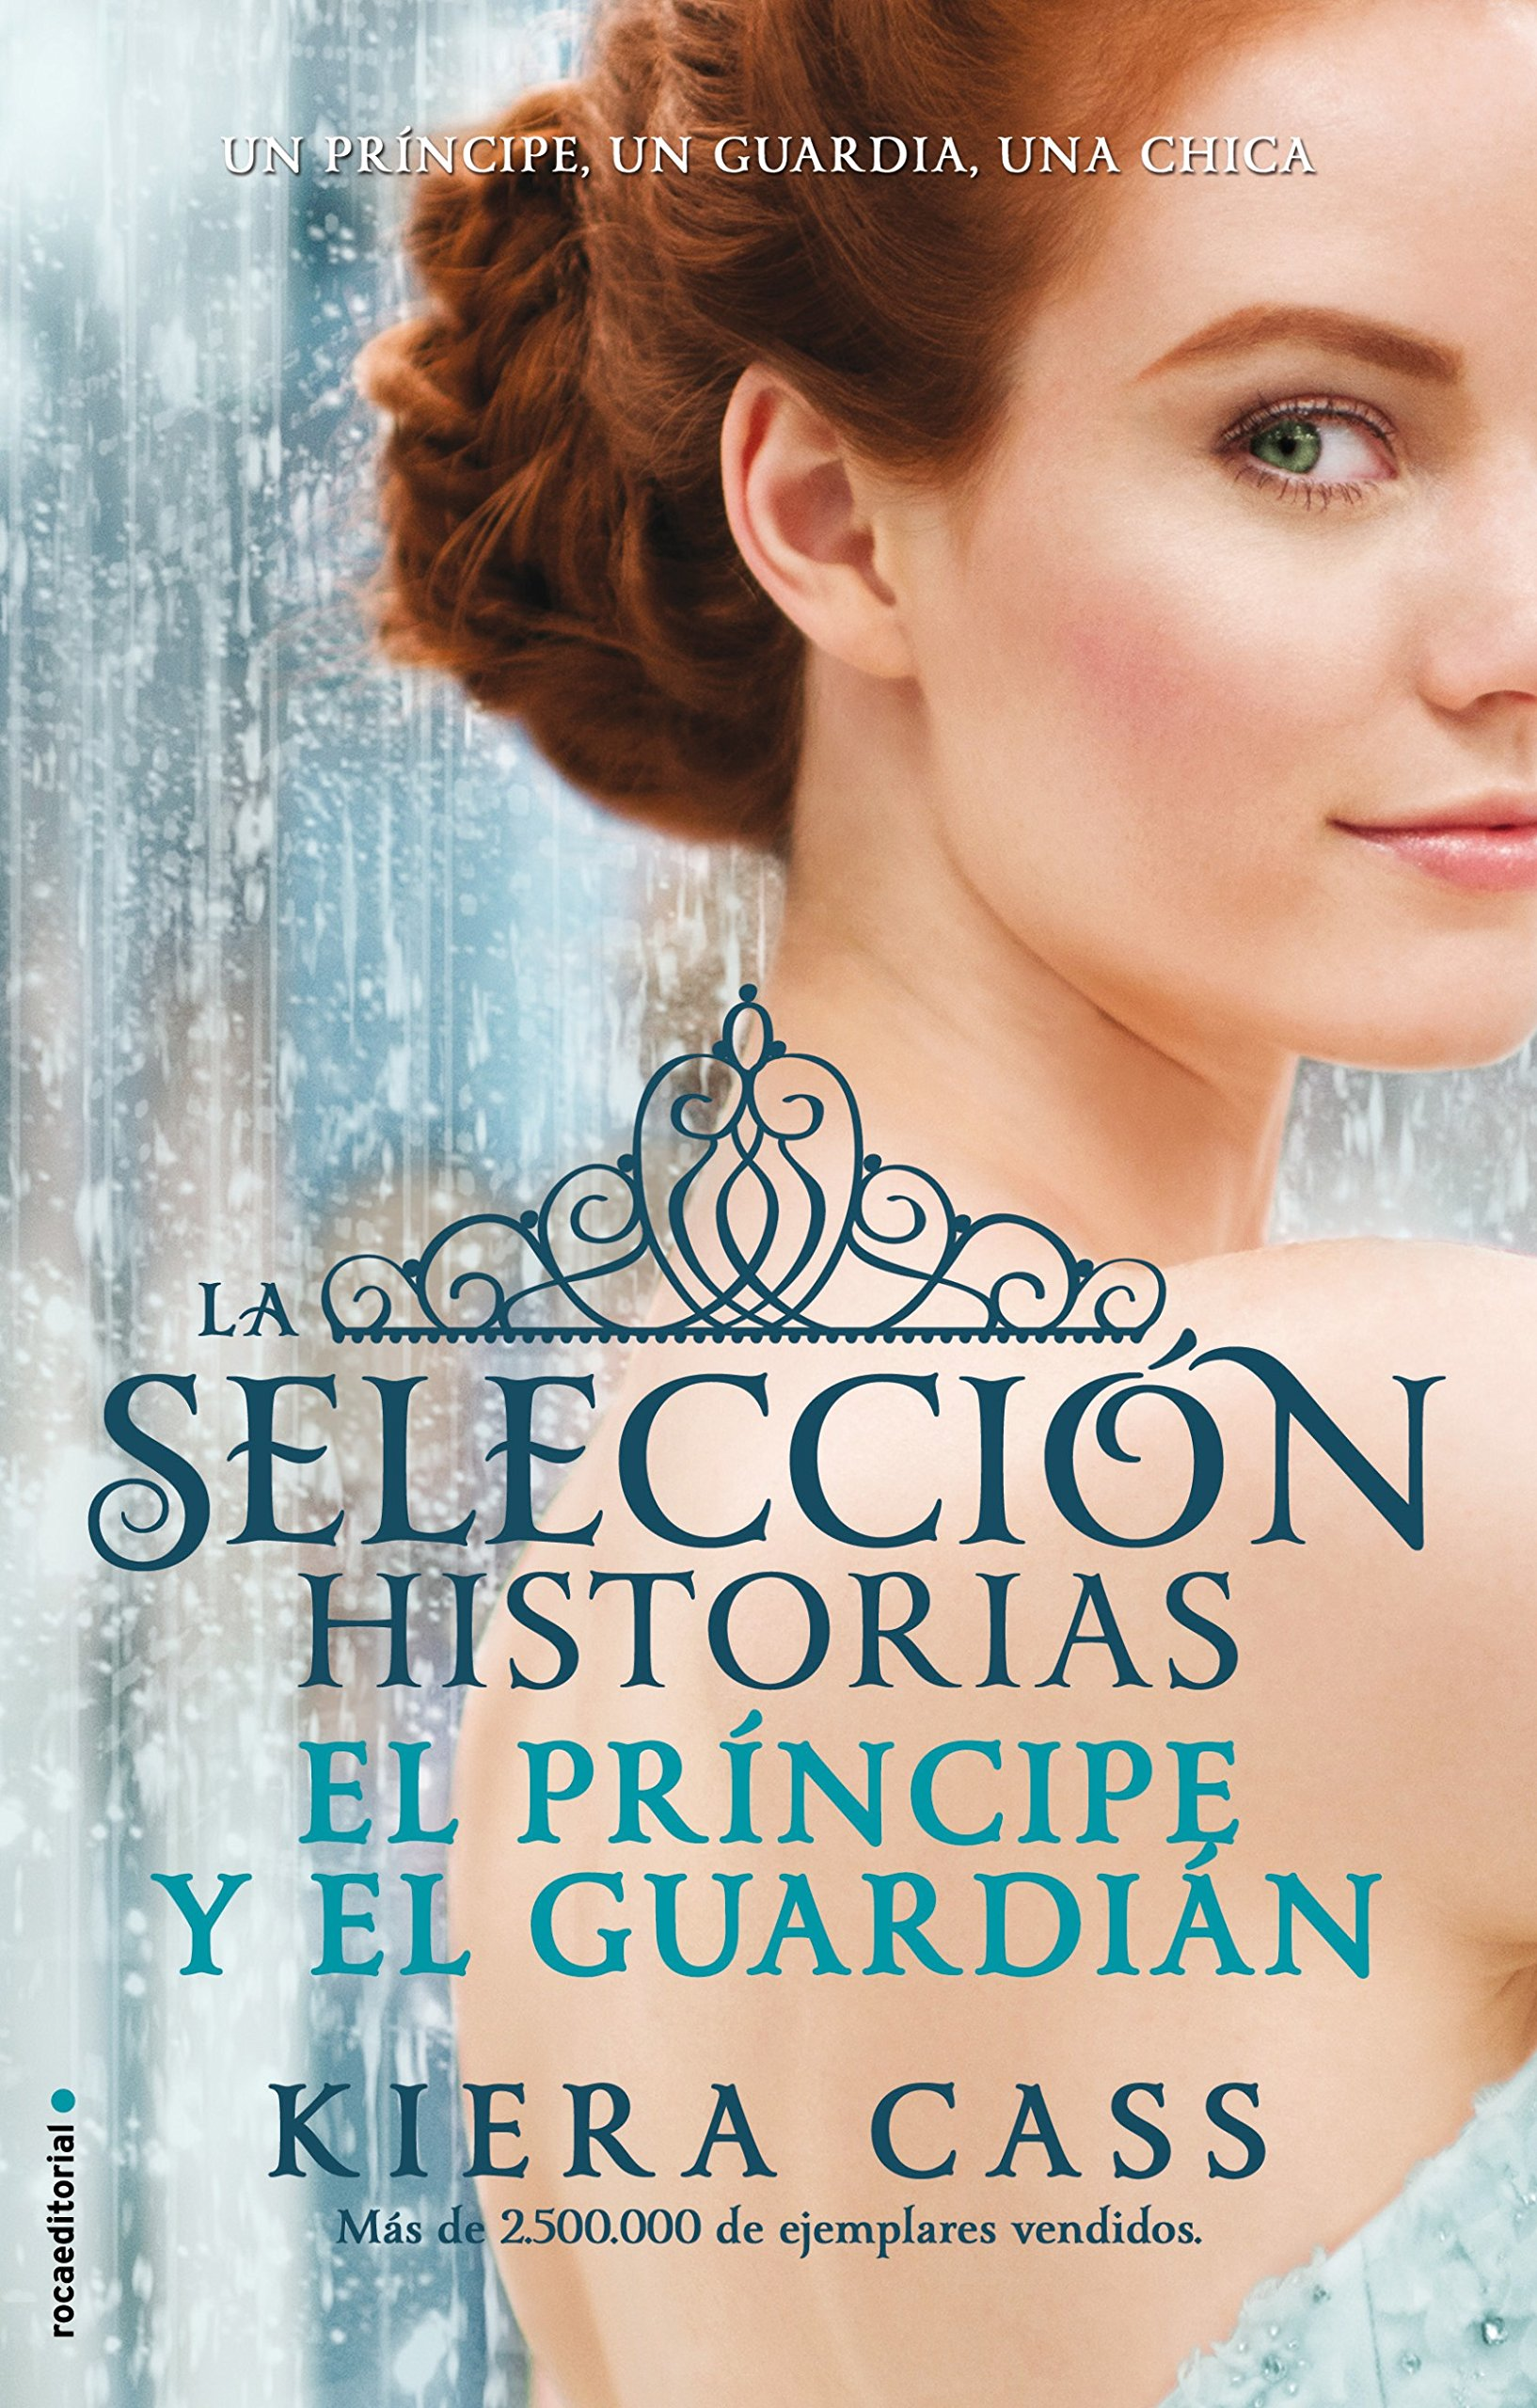 Historias de La Seleccion Vol. 1 (Historias De La Seleccion/the Selection) (Spanish Edition) (La seleccion: Historias/The Selection: Histories) ...